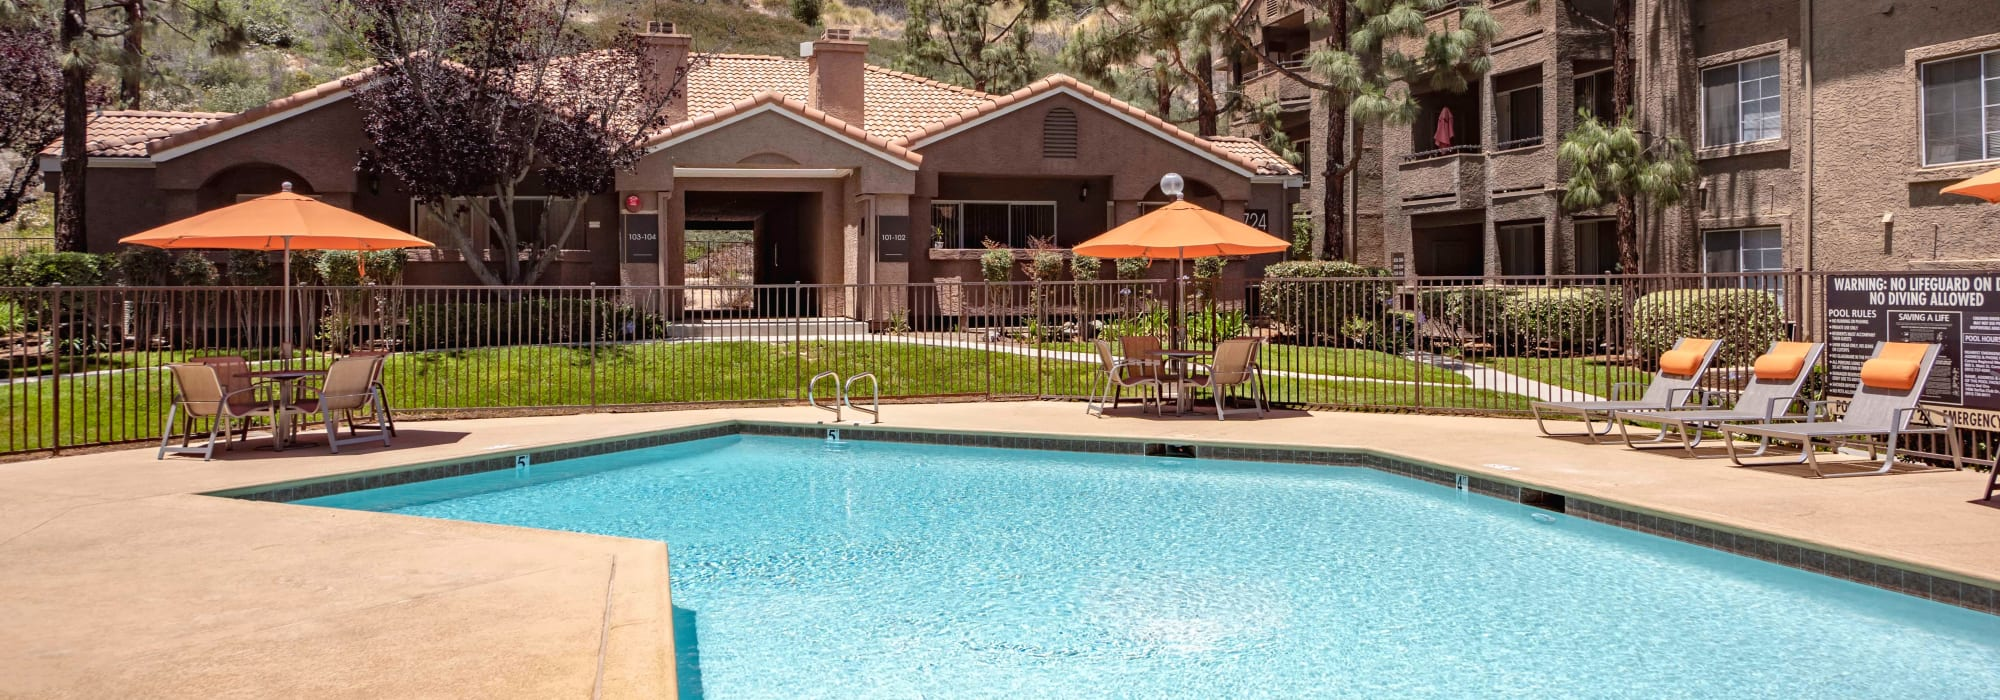 Reviews at Sierra Del Oro Apartments in Corona, California